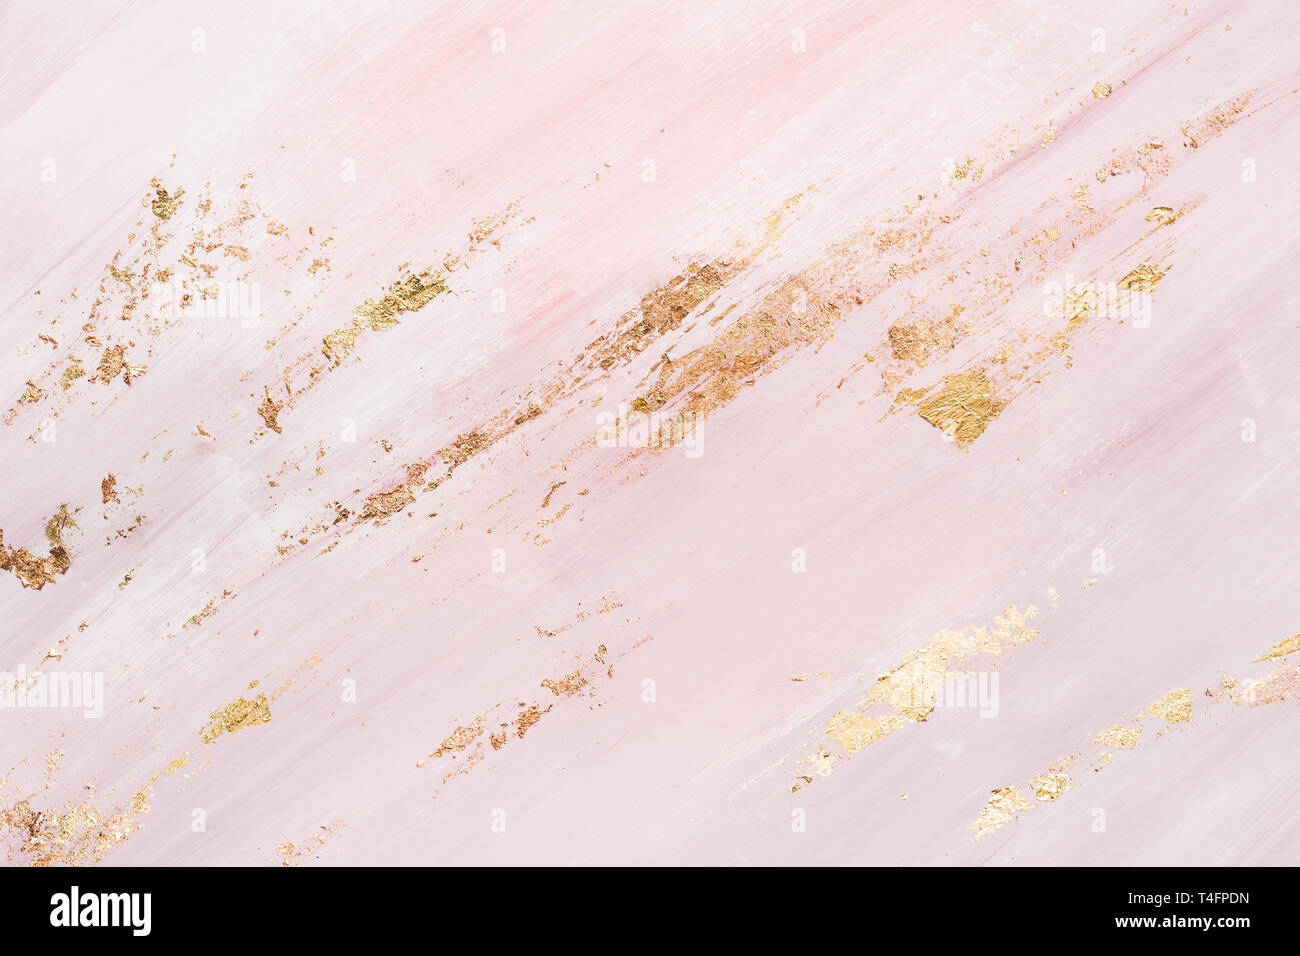 Pink Marble Background With Gold Brushstrokes Place For Your Design Stock Photo Alamy